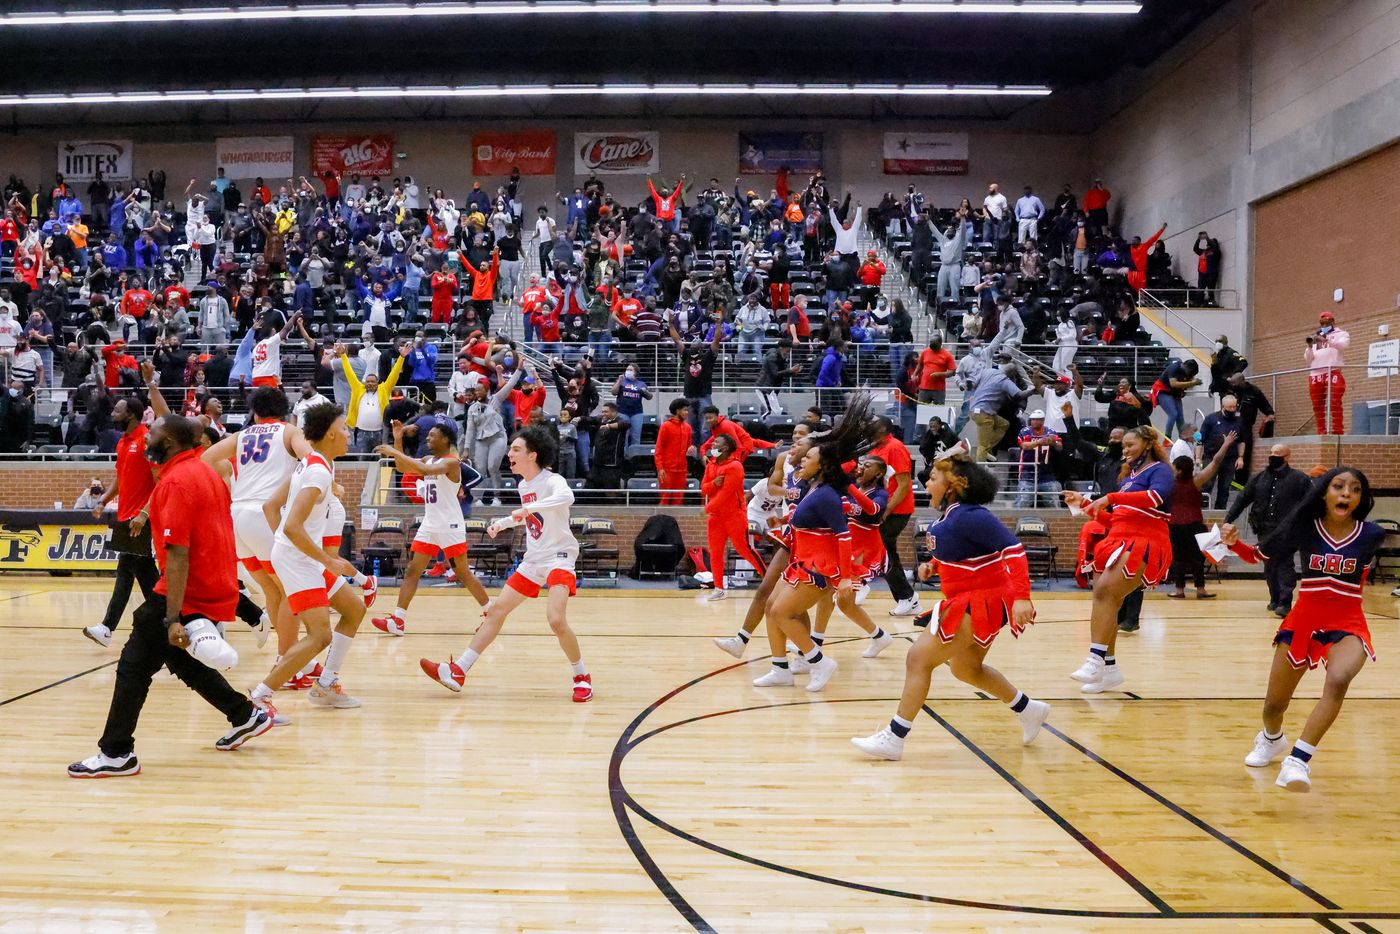 Kimball celebrates their win over Lancaster following overtime of a boys basketball UIL Class 5A Region II playoff game against in Forney on Friday, March 5, 2021. (Juan Figueroa/ The Dallas Morning News)